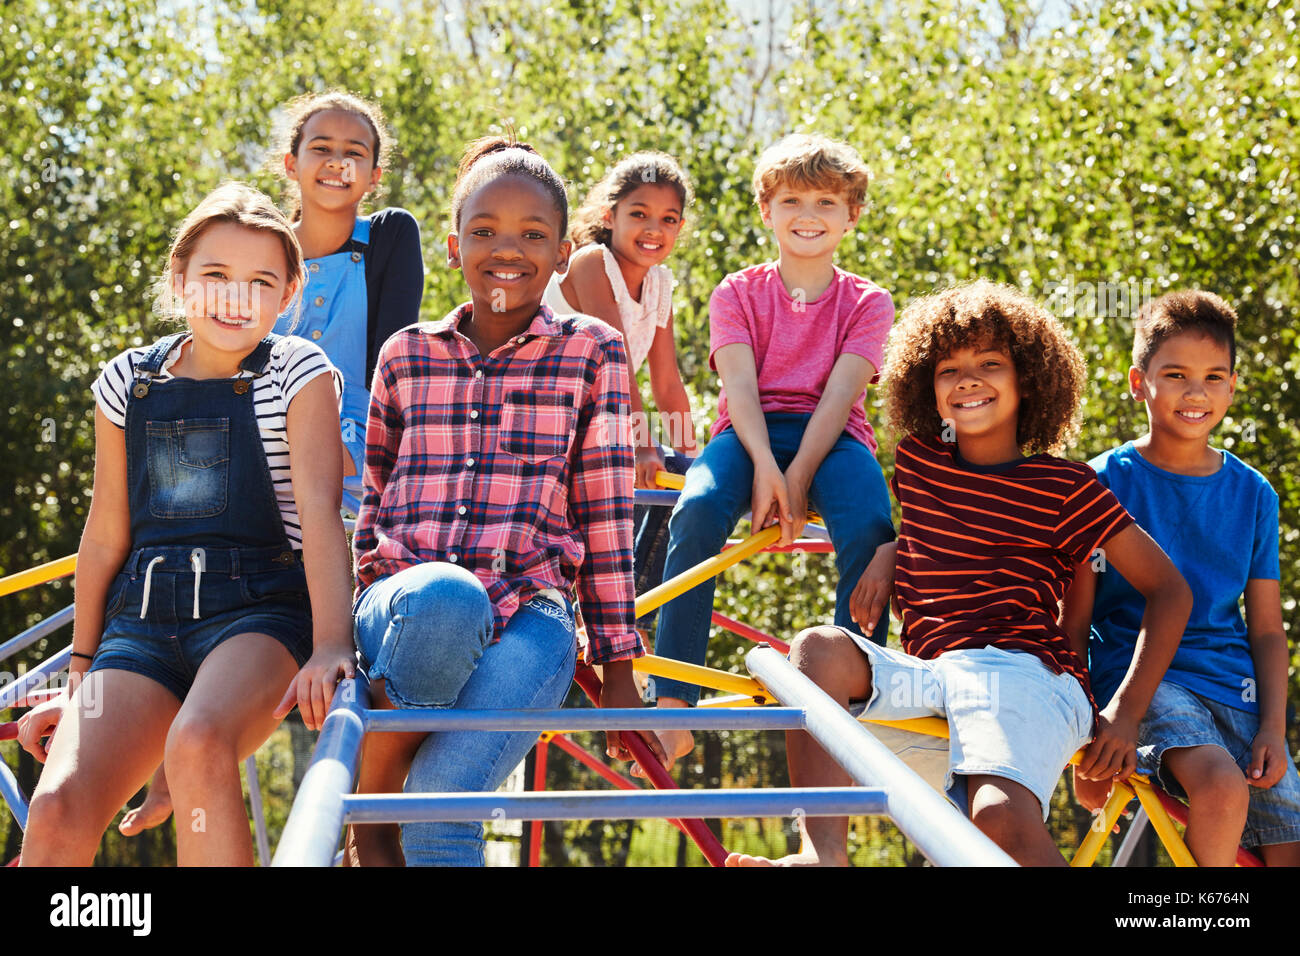 Pre-teen friends sitting on climbing frame in playground - Stock Image